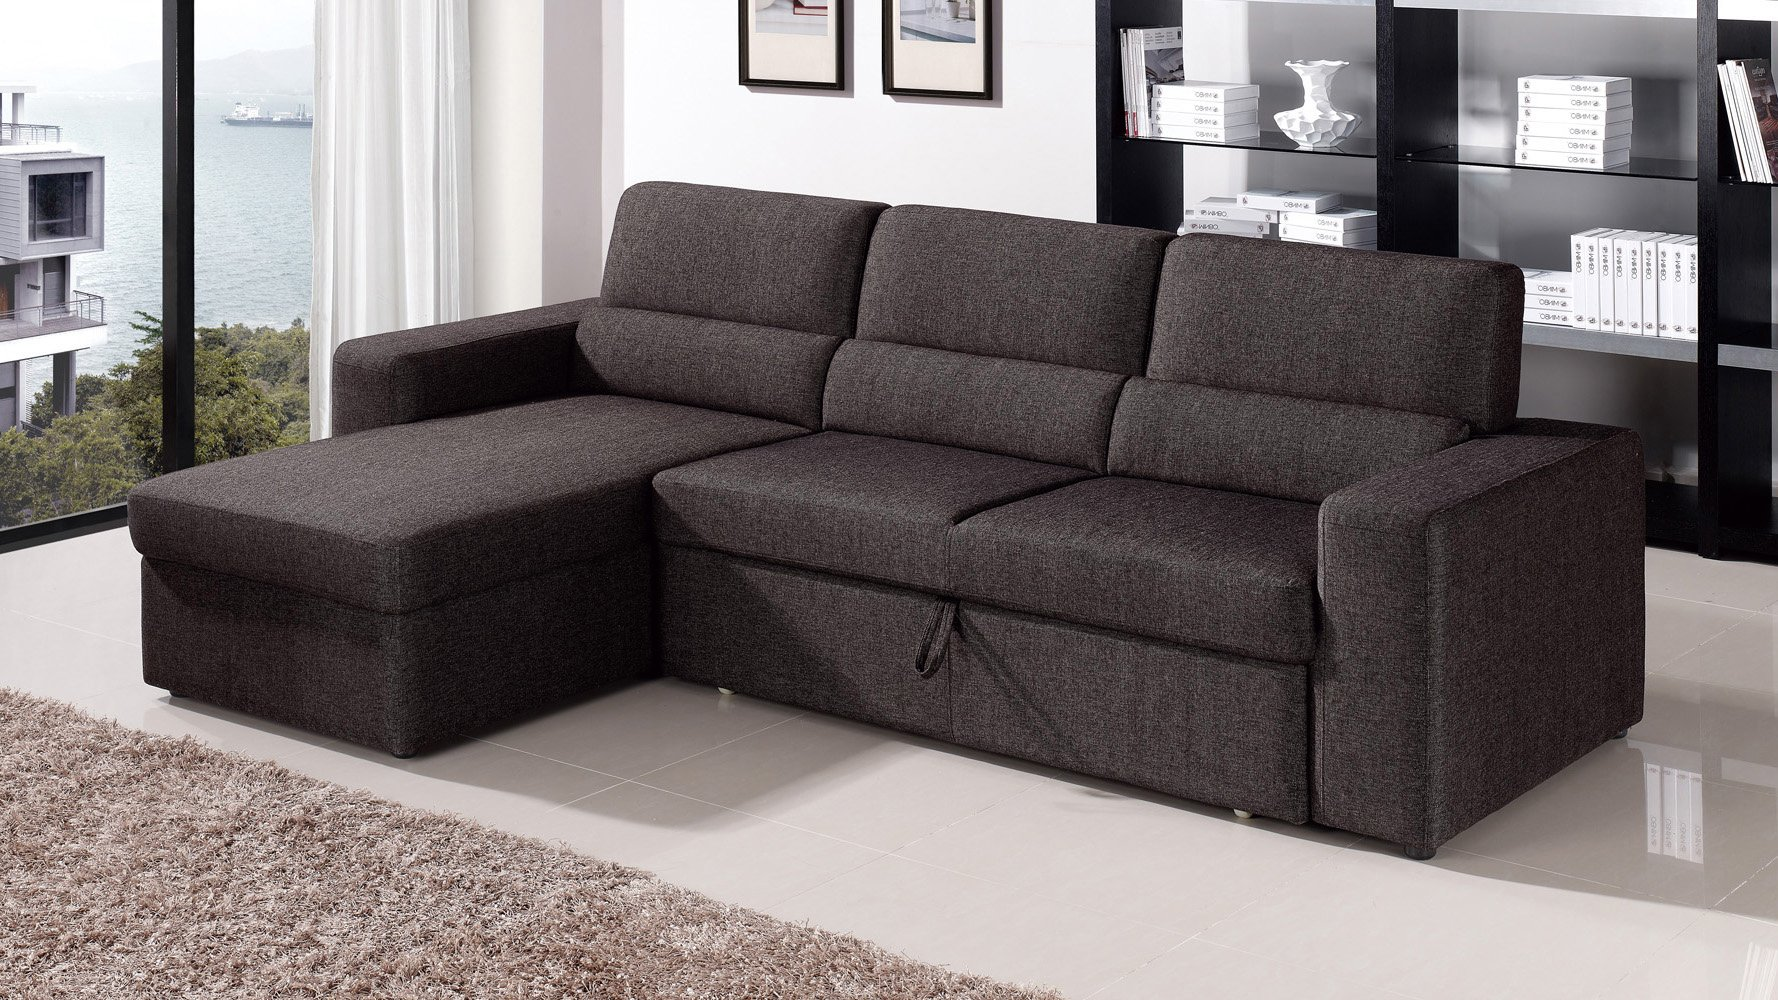 luxury what recliner full lazy sofas spaces size bed living modular boy is functional black of furniture leather a sectional cheap room bobs for sofa modern